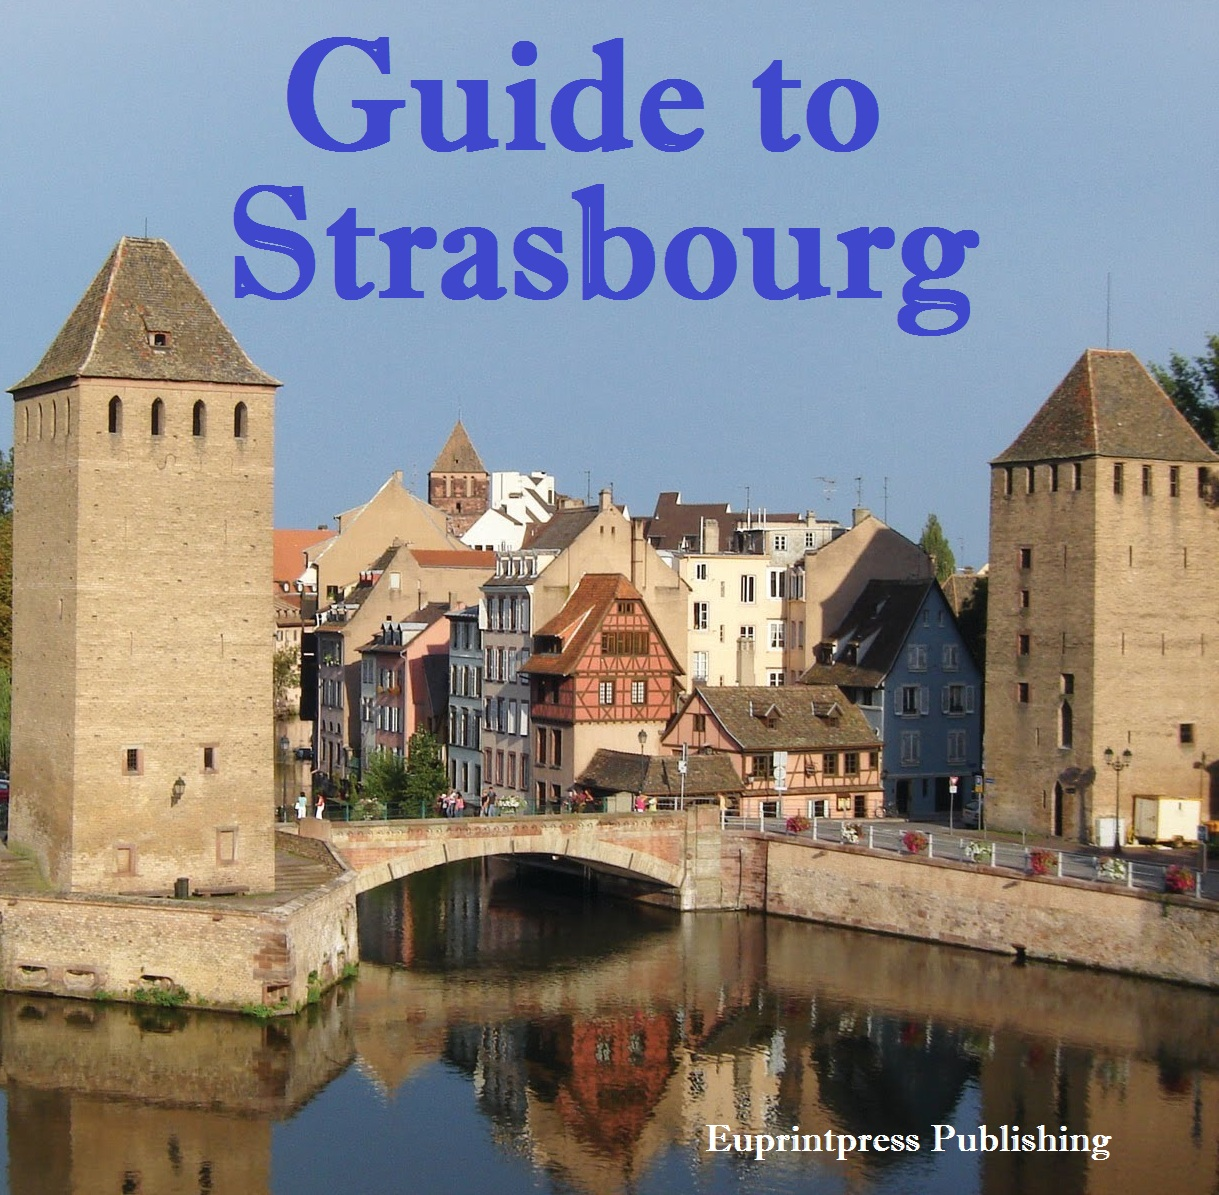 Guide to Strasbourg